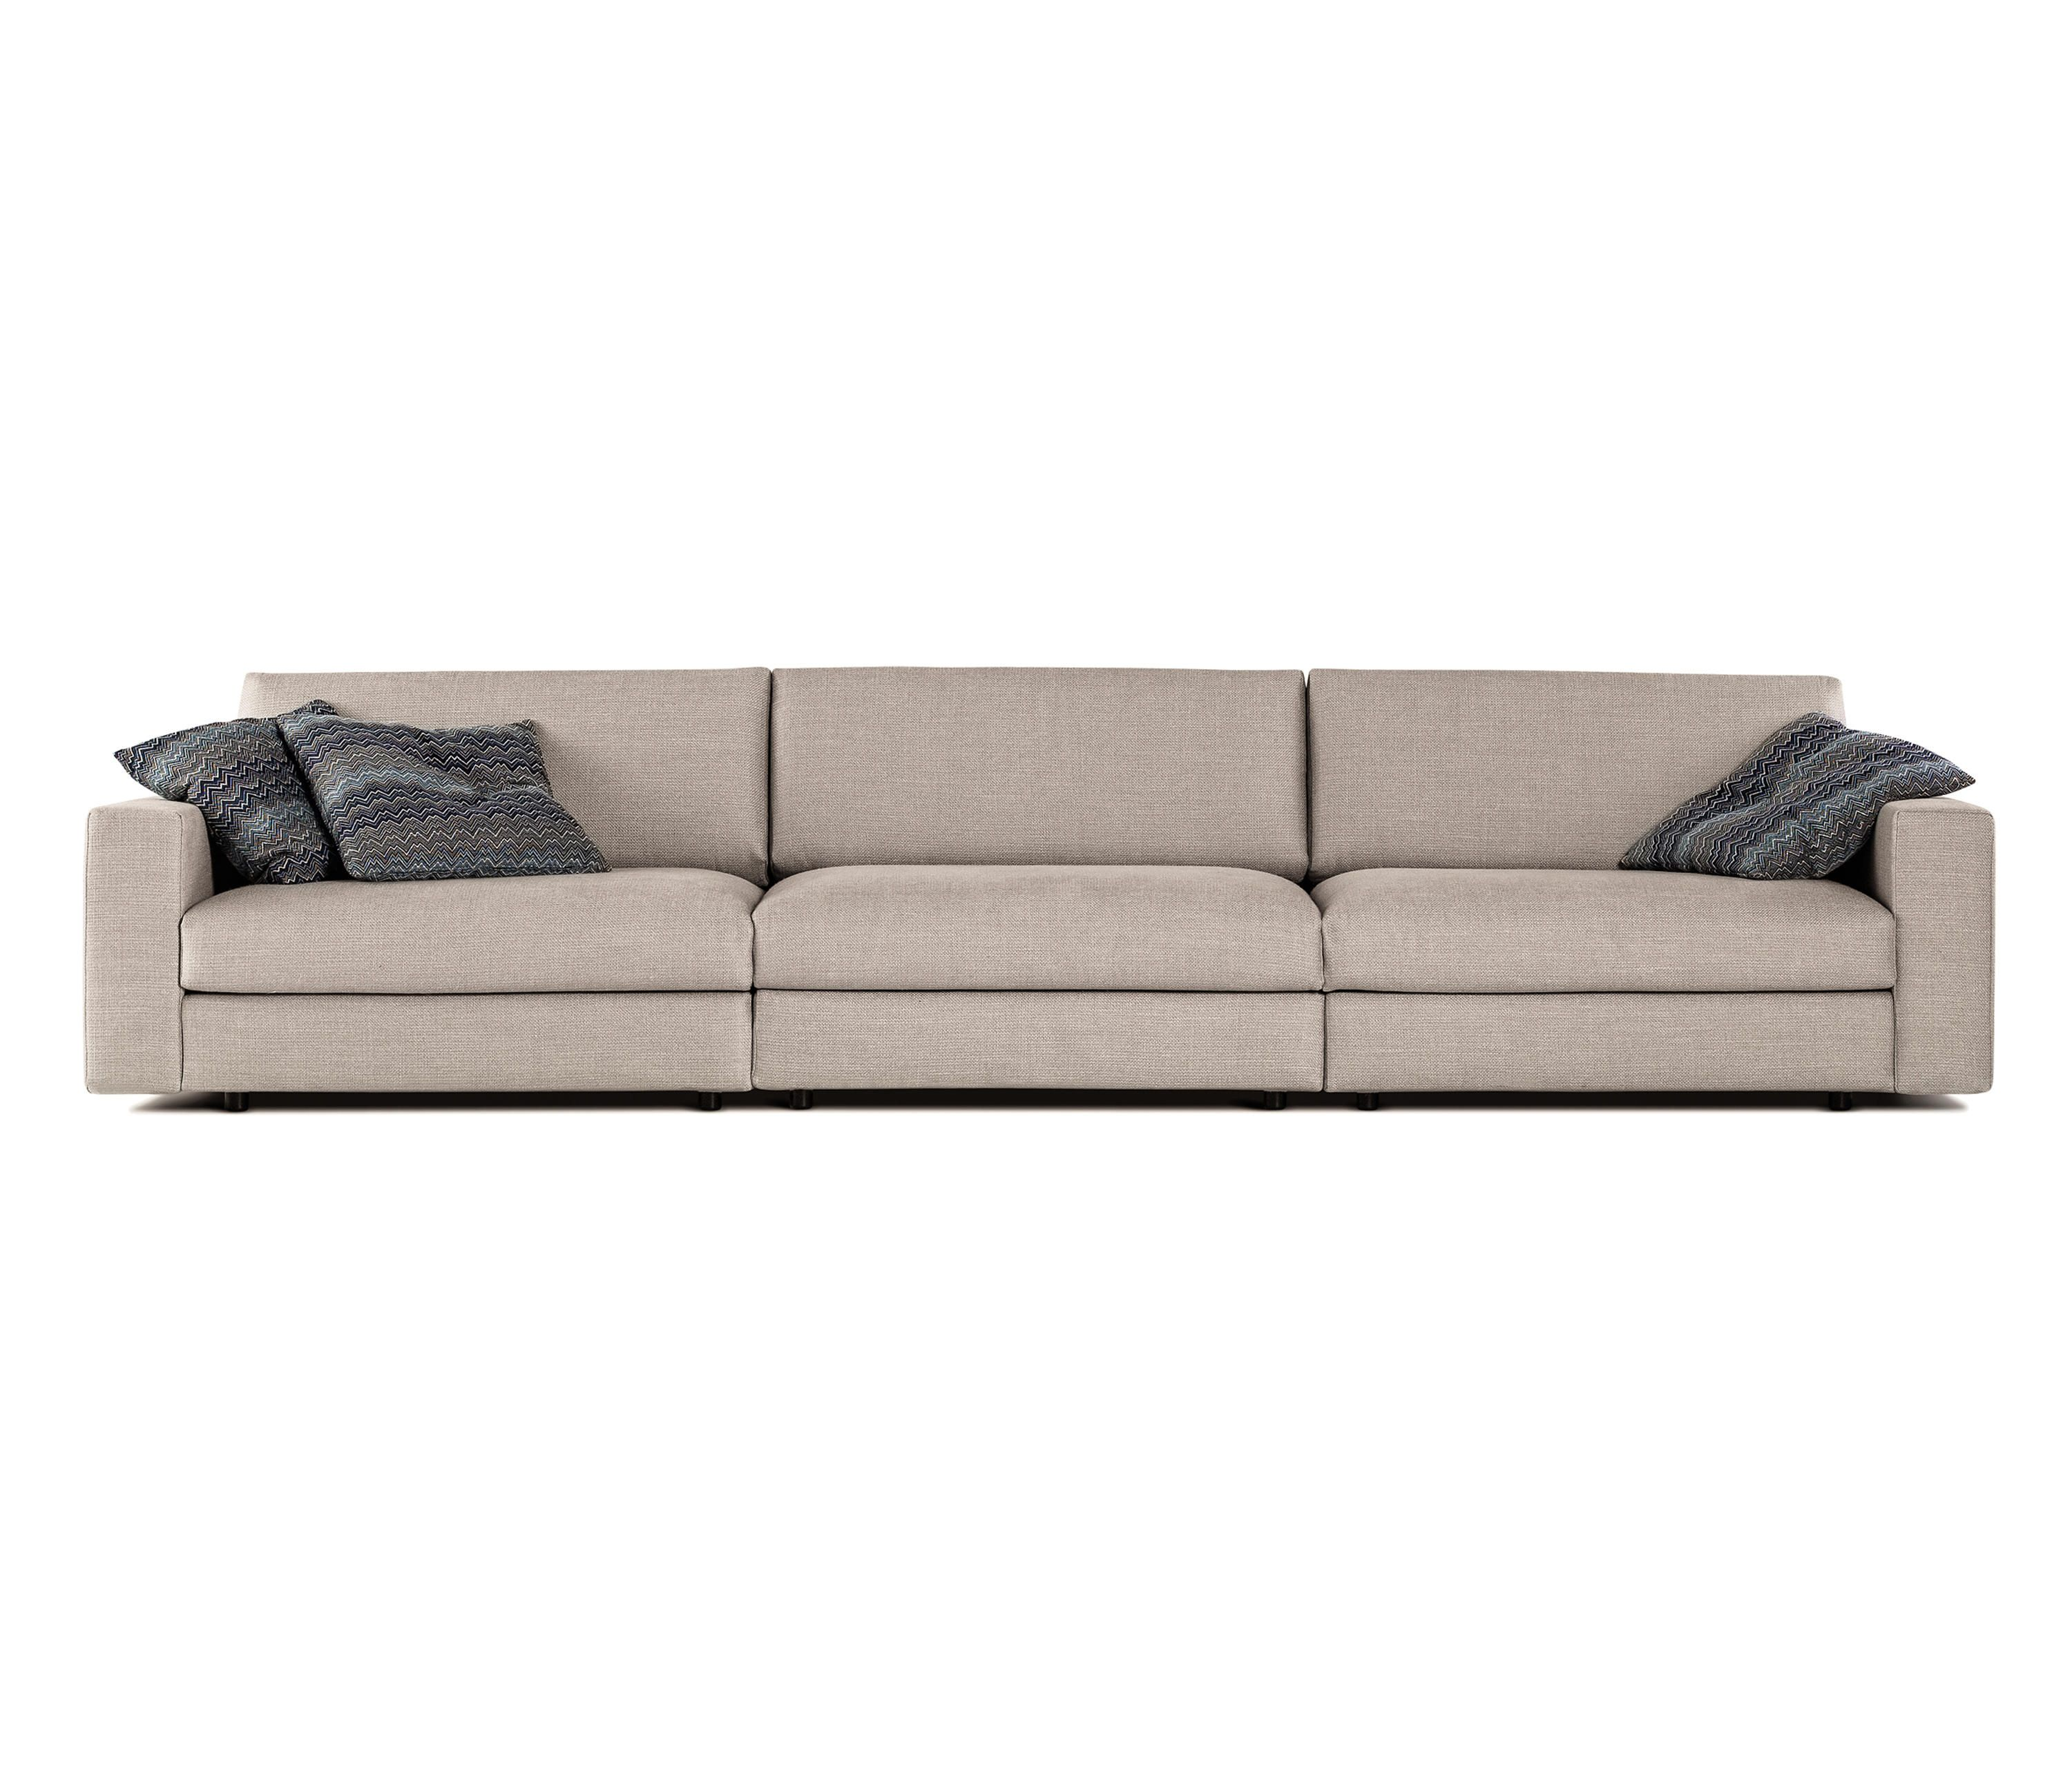 Focus On Furniture Sofa Bed Classic Comes From A Family Of Modular Sofas With A Focus On